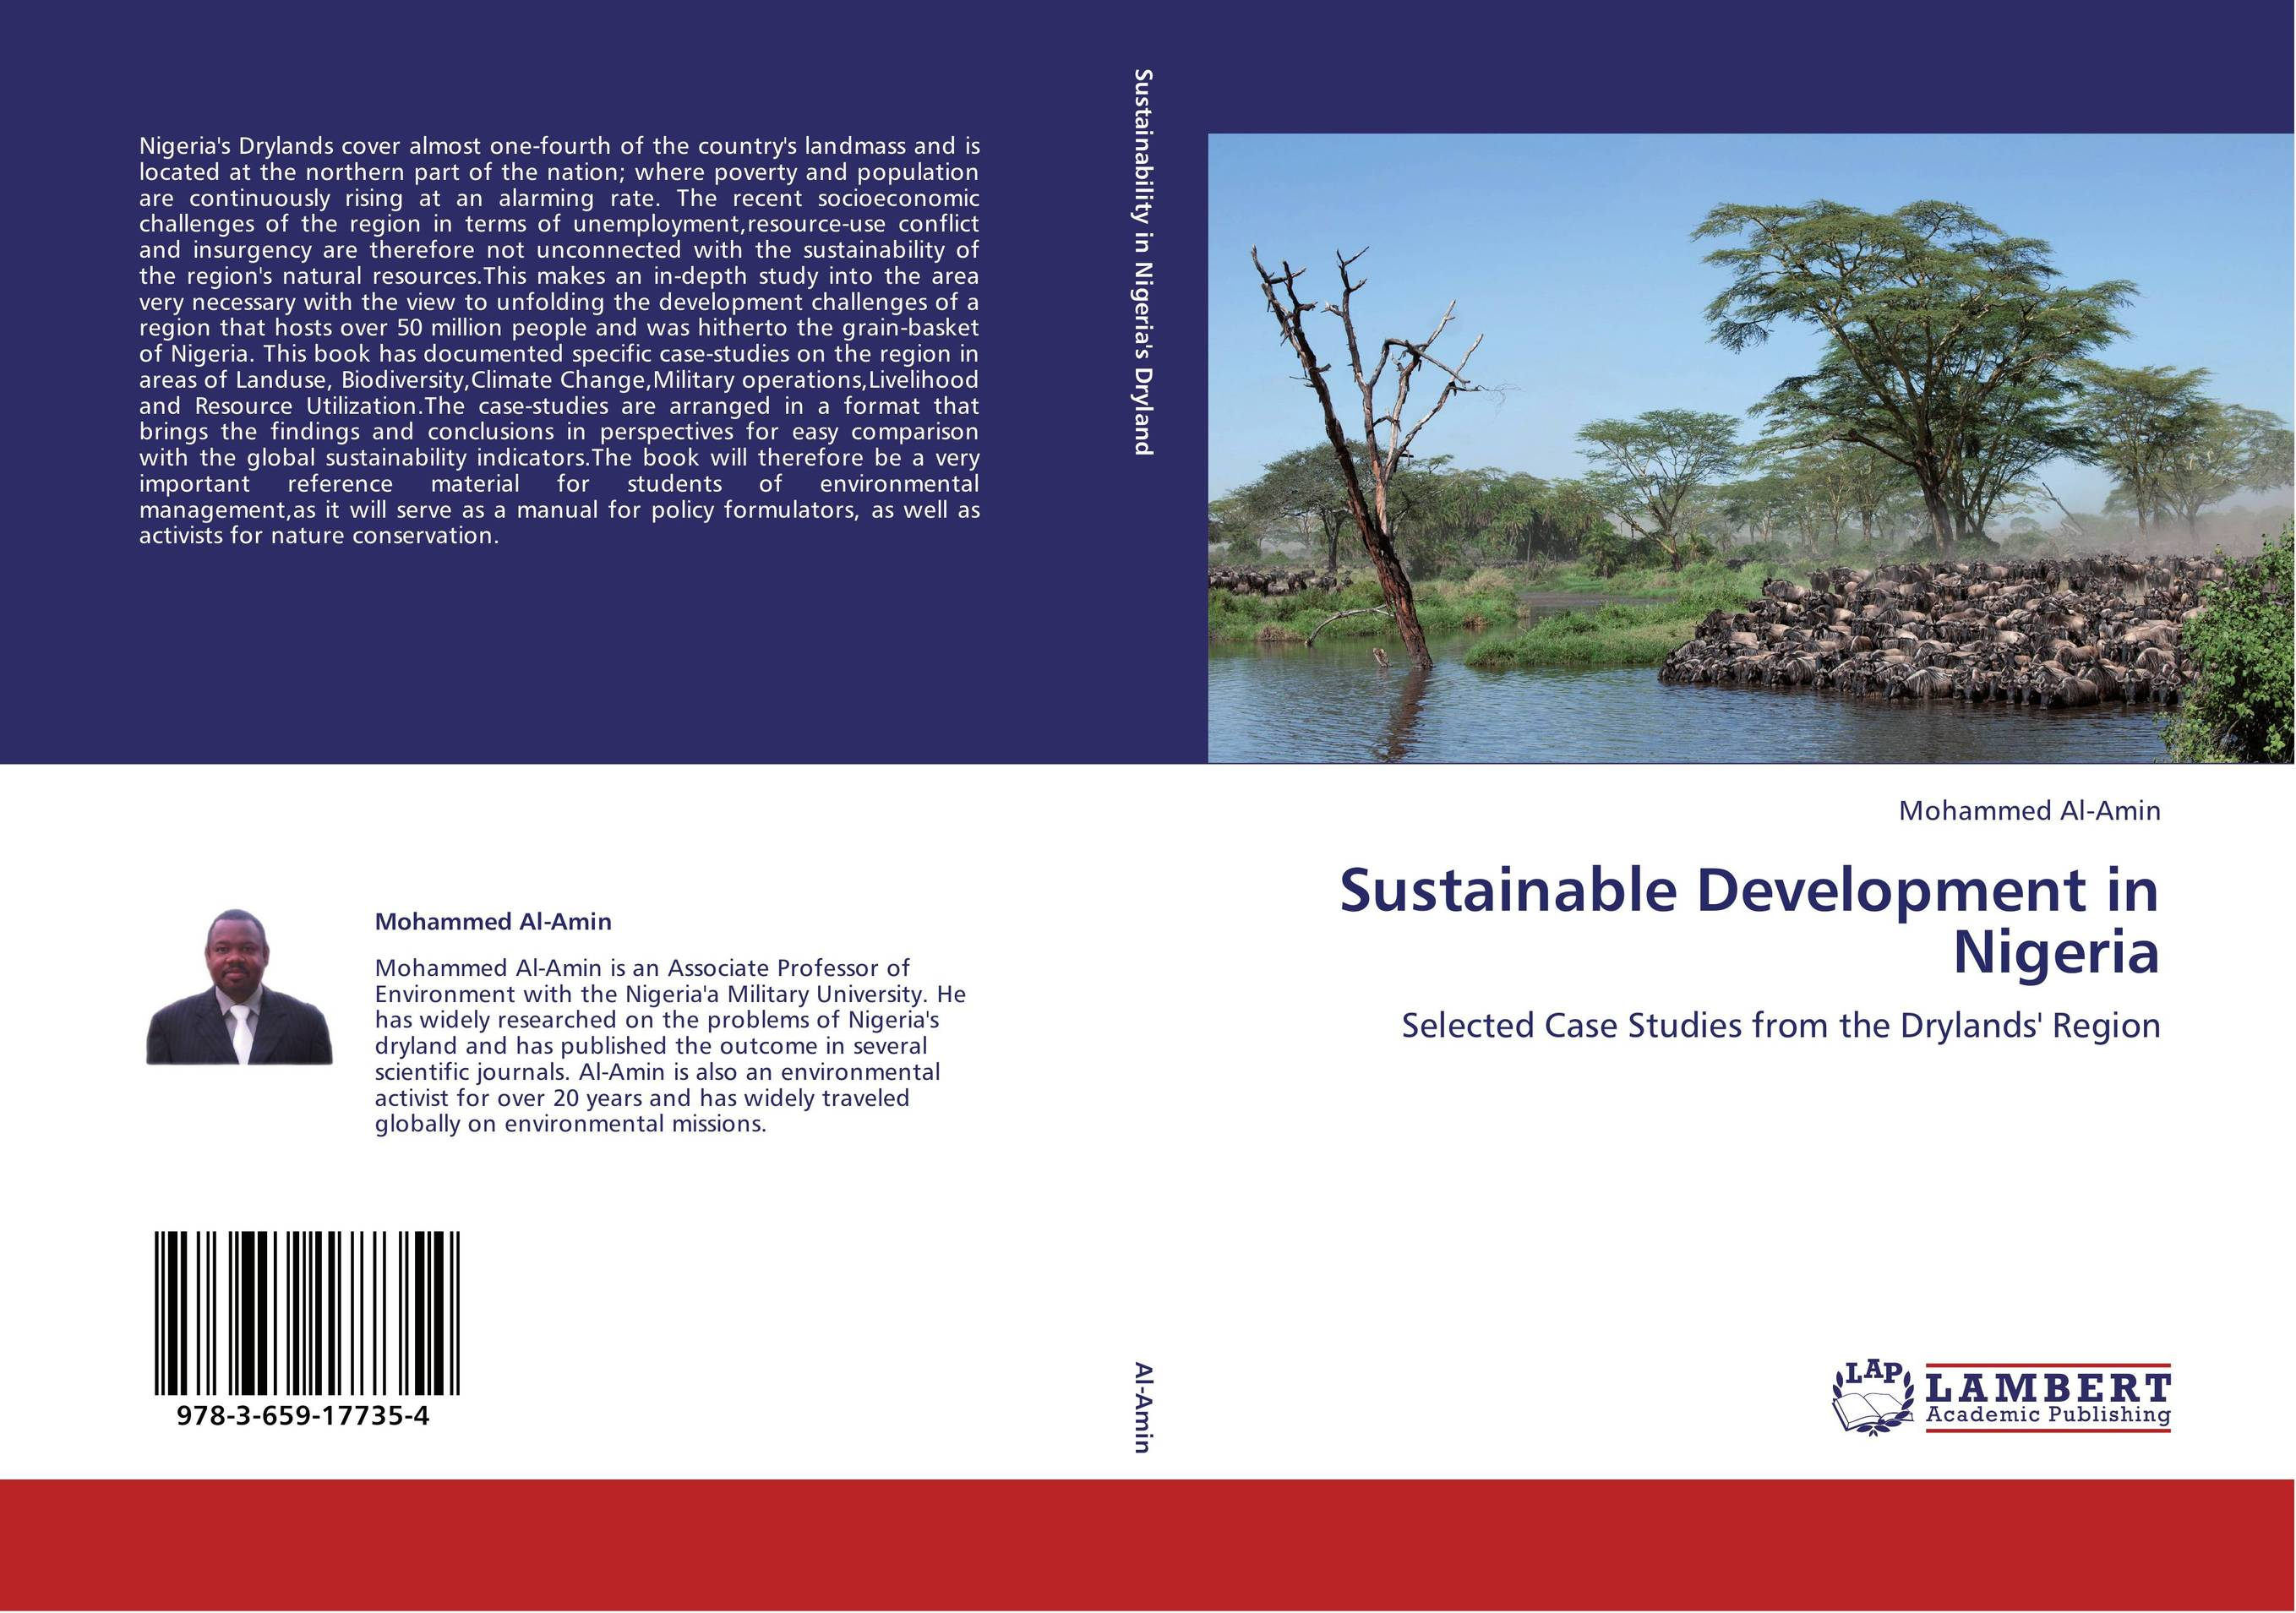 sustainable management of natural resources in nigeria Managing the environment they argued further that if the environment is properly managed, it could be a productive resource to meet nigeria's socio-economic and aesthetic needs, not only for today.